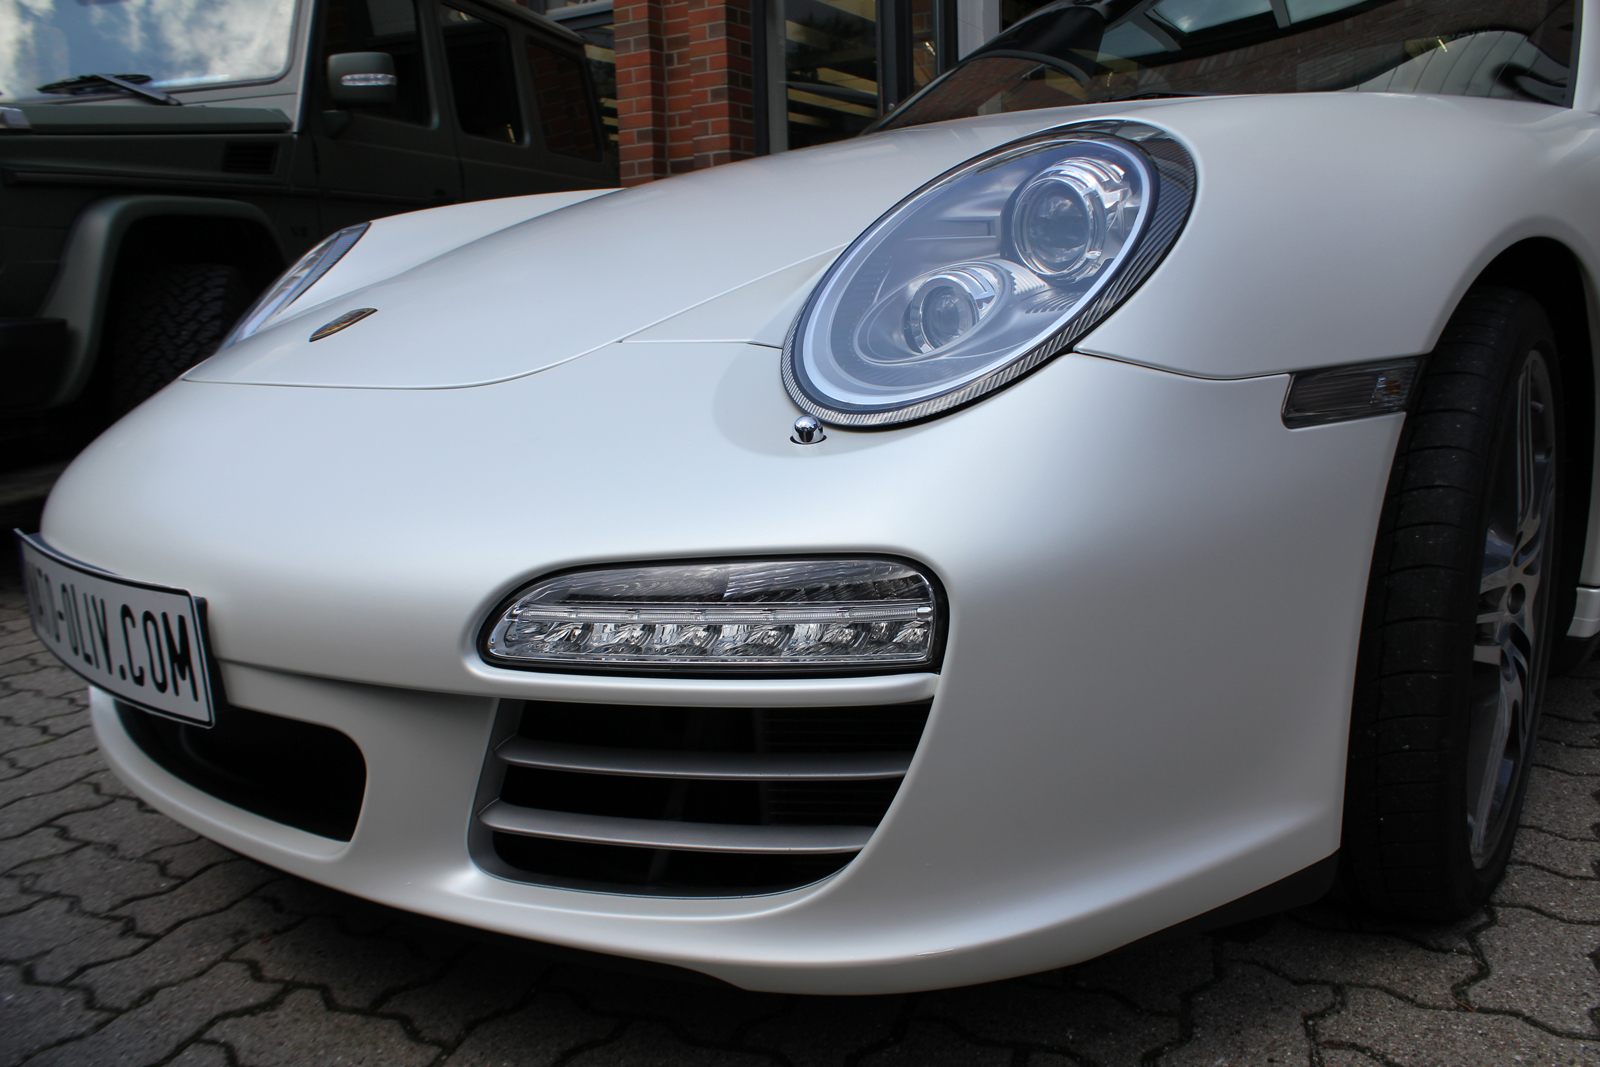 Car Wrapping Auto Folierung Porsche Carrera 4S Satin Pearl